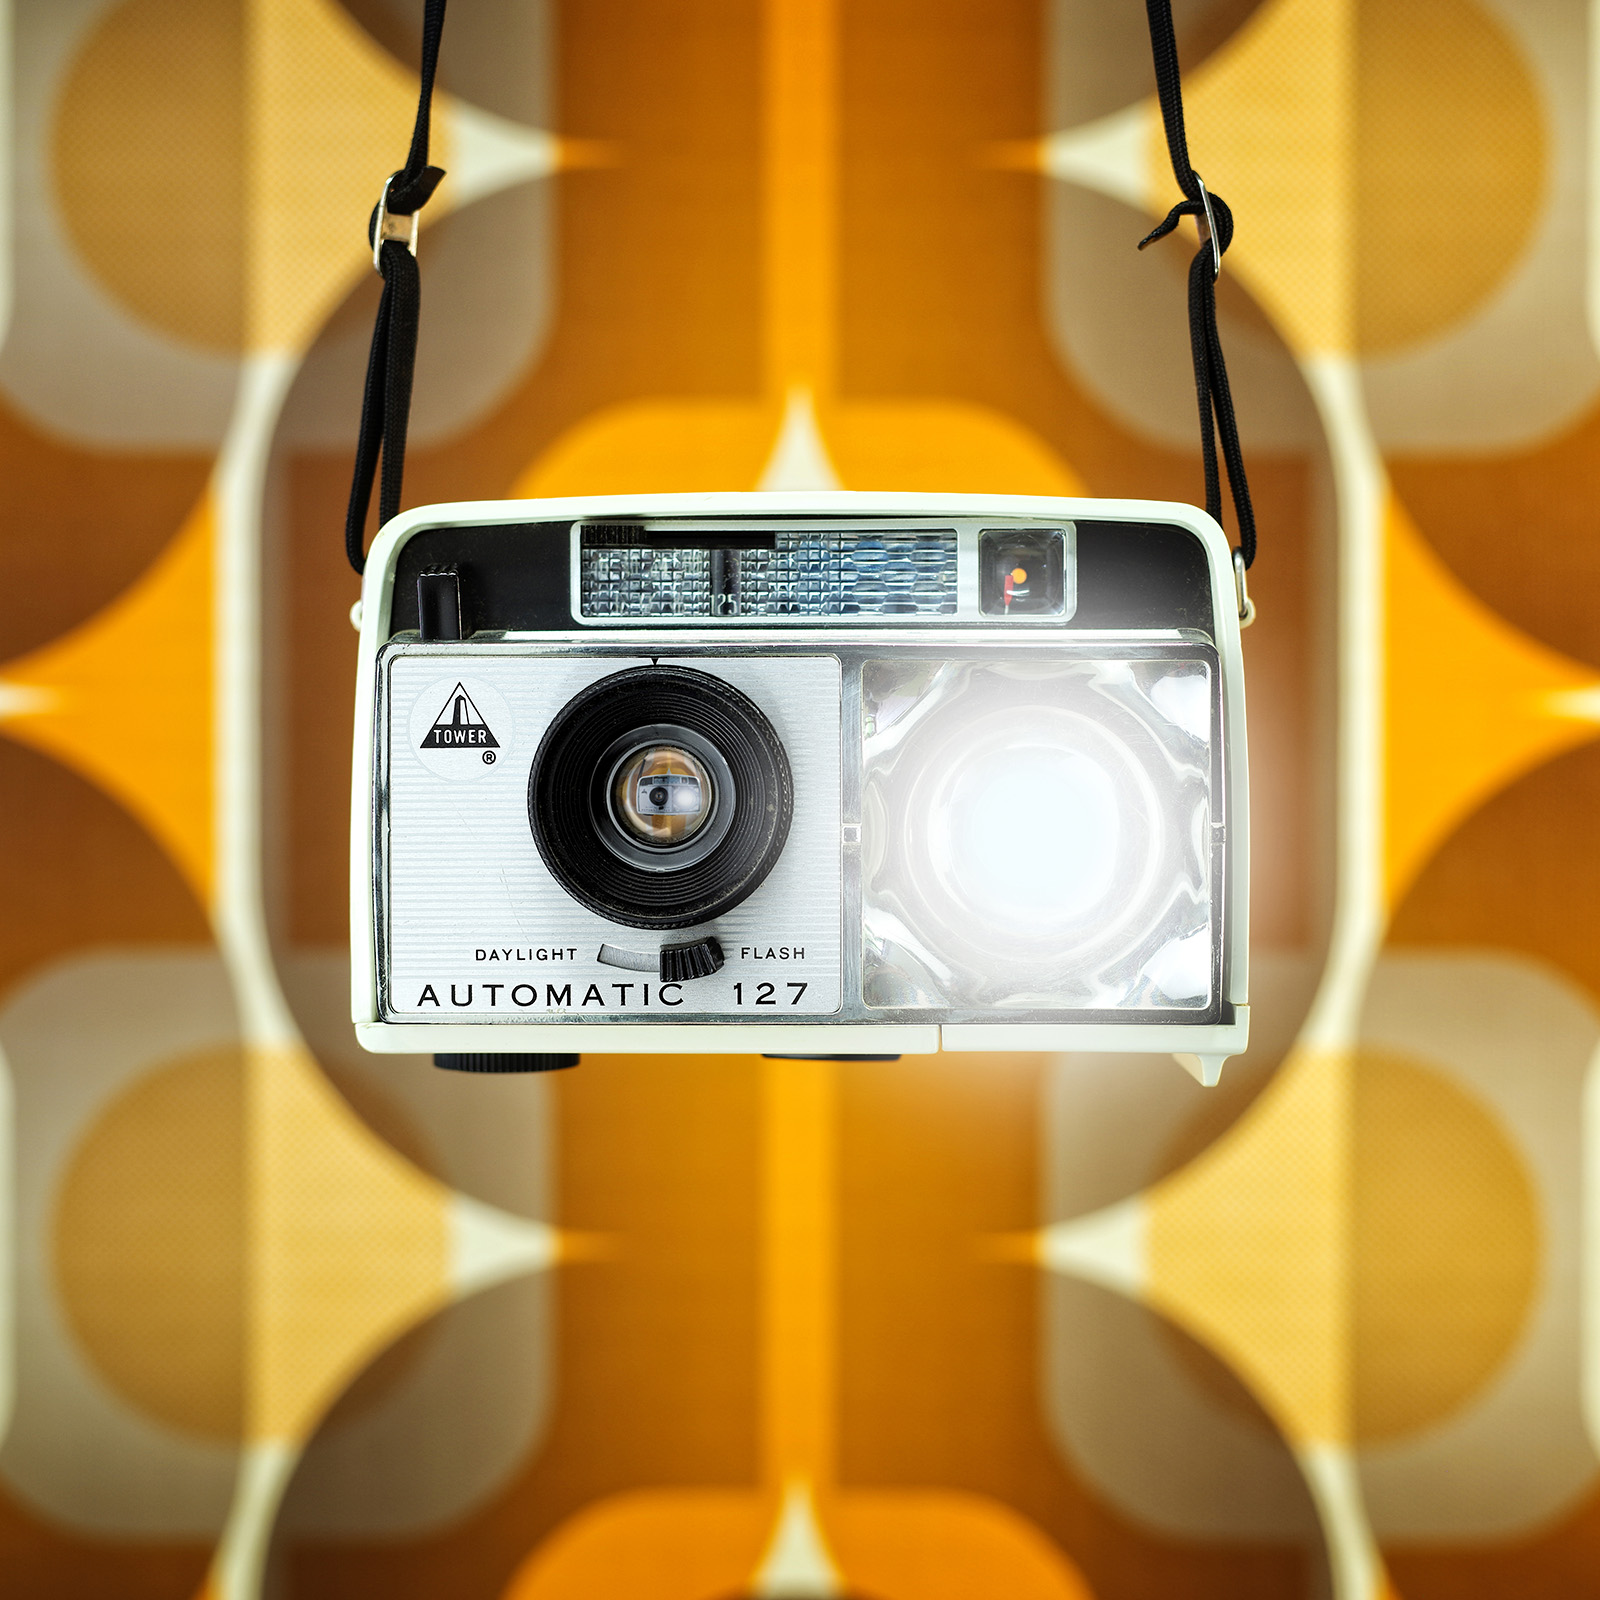 What If Vintage Cameras Had Profiles On Instagram? New Cameraselfies!